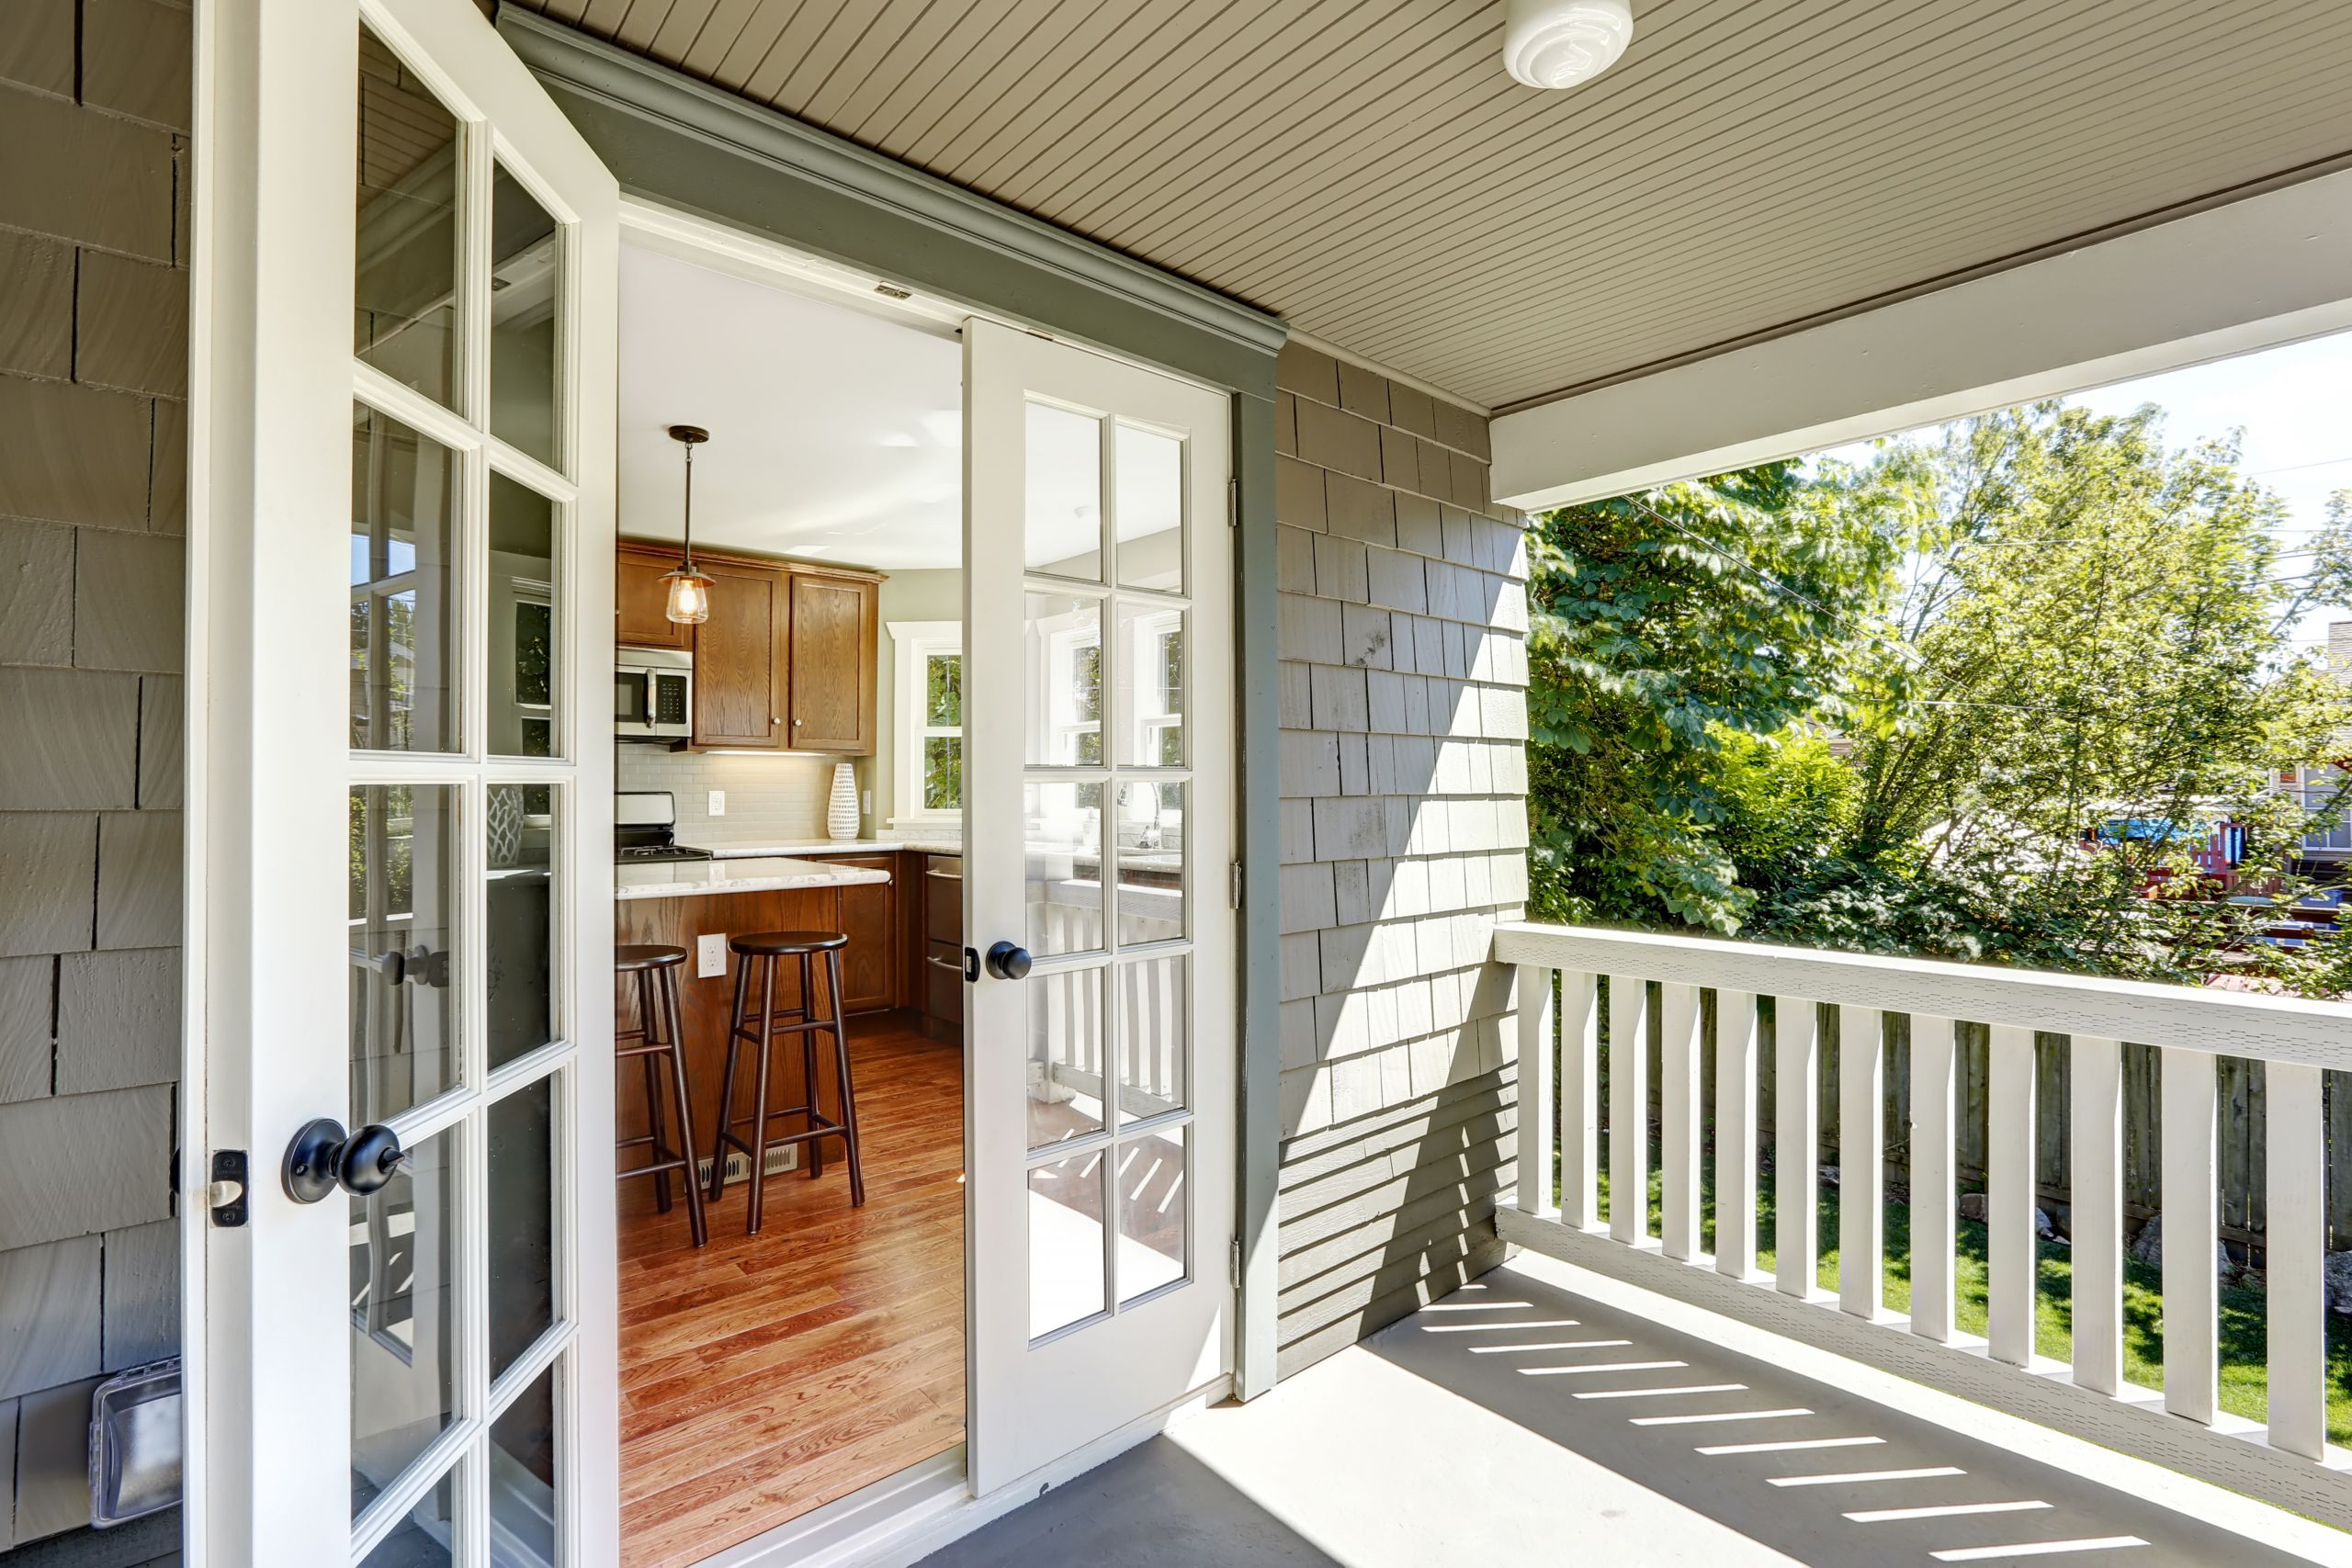 French Door Replacement for Residential Home